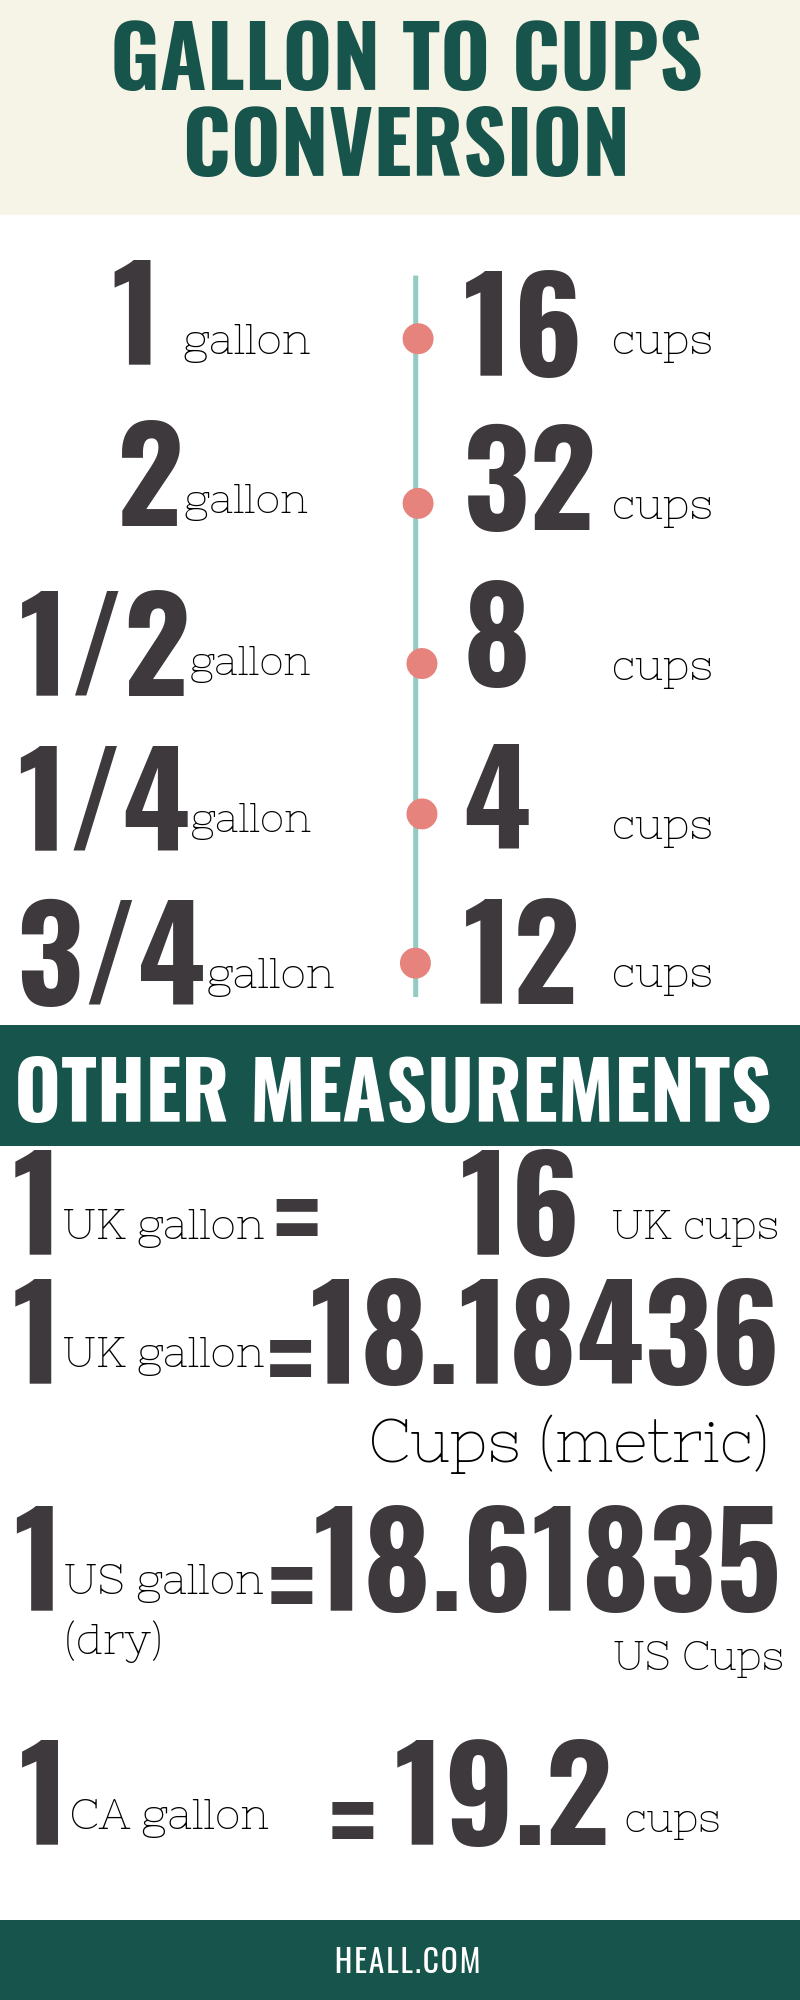 Gallons to cups conversion chart